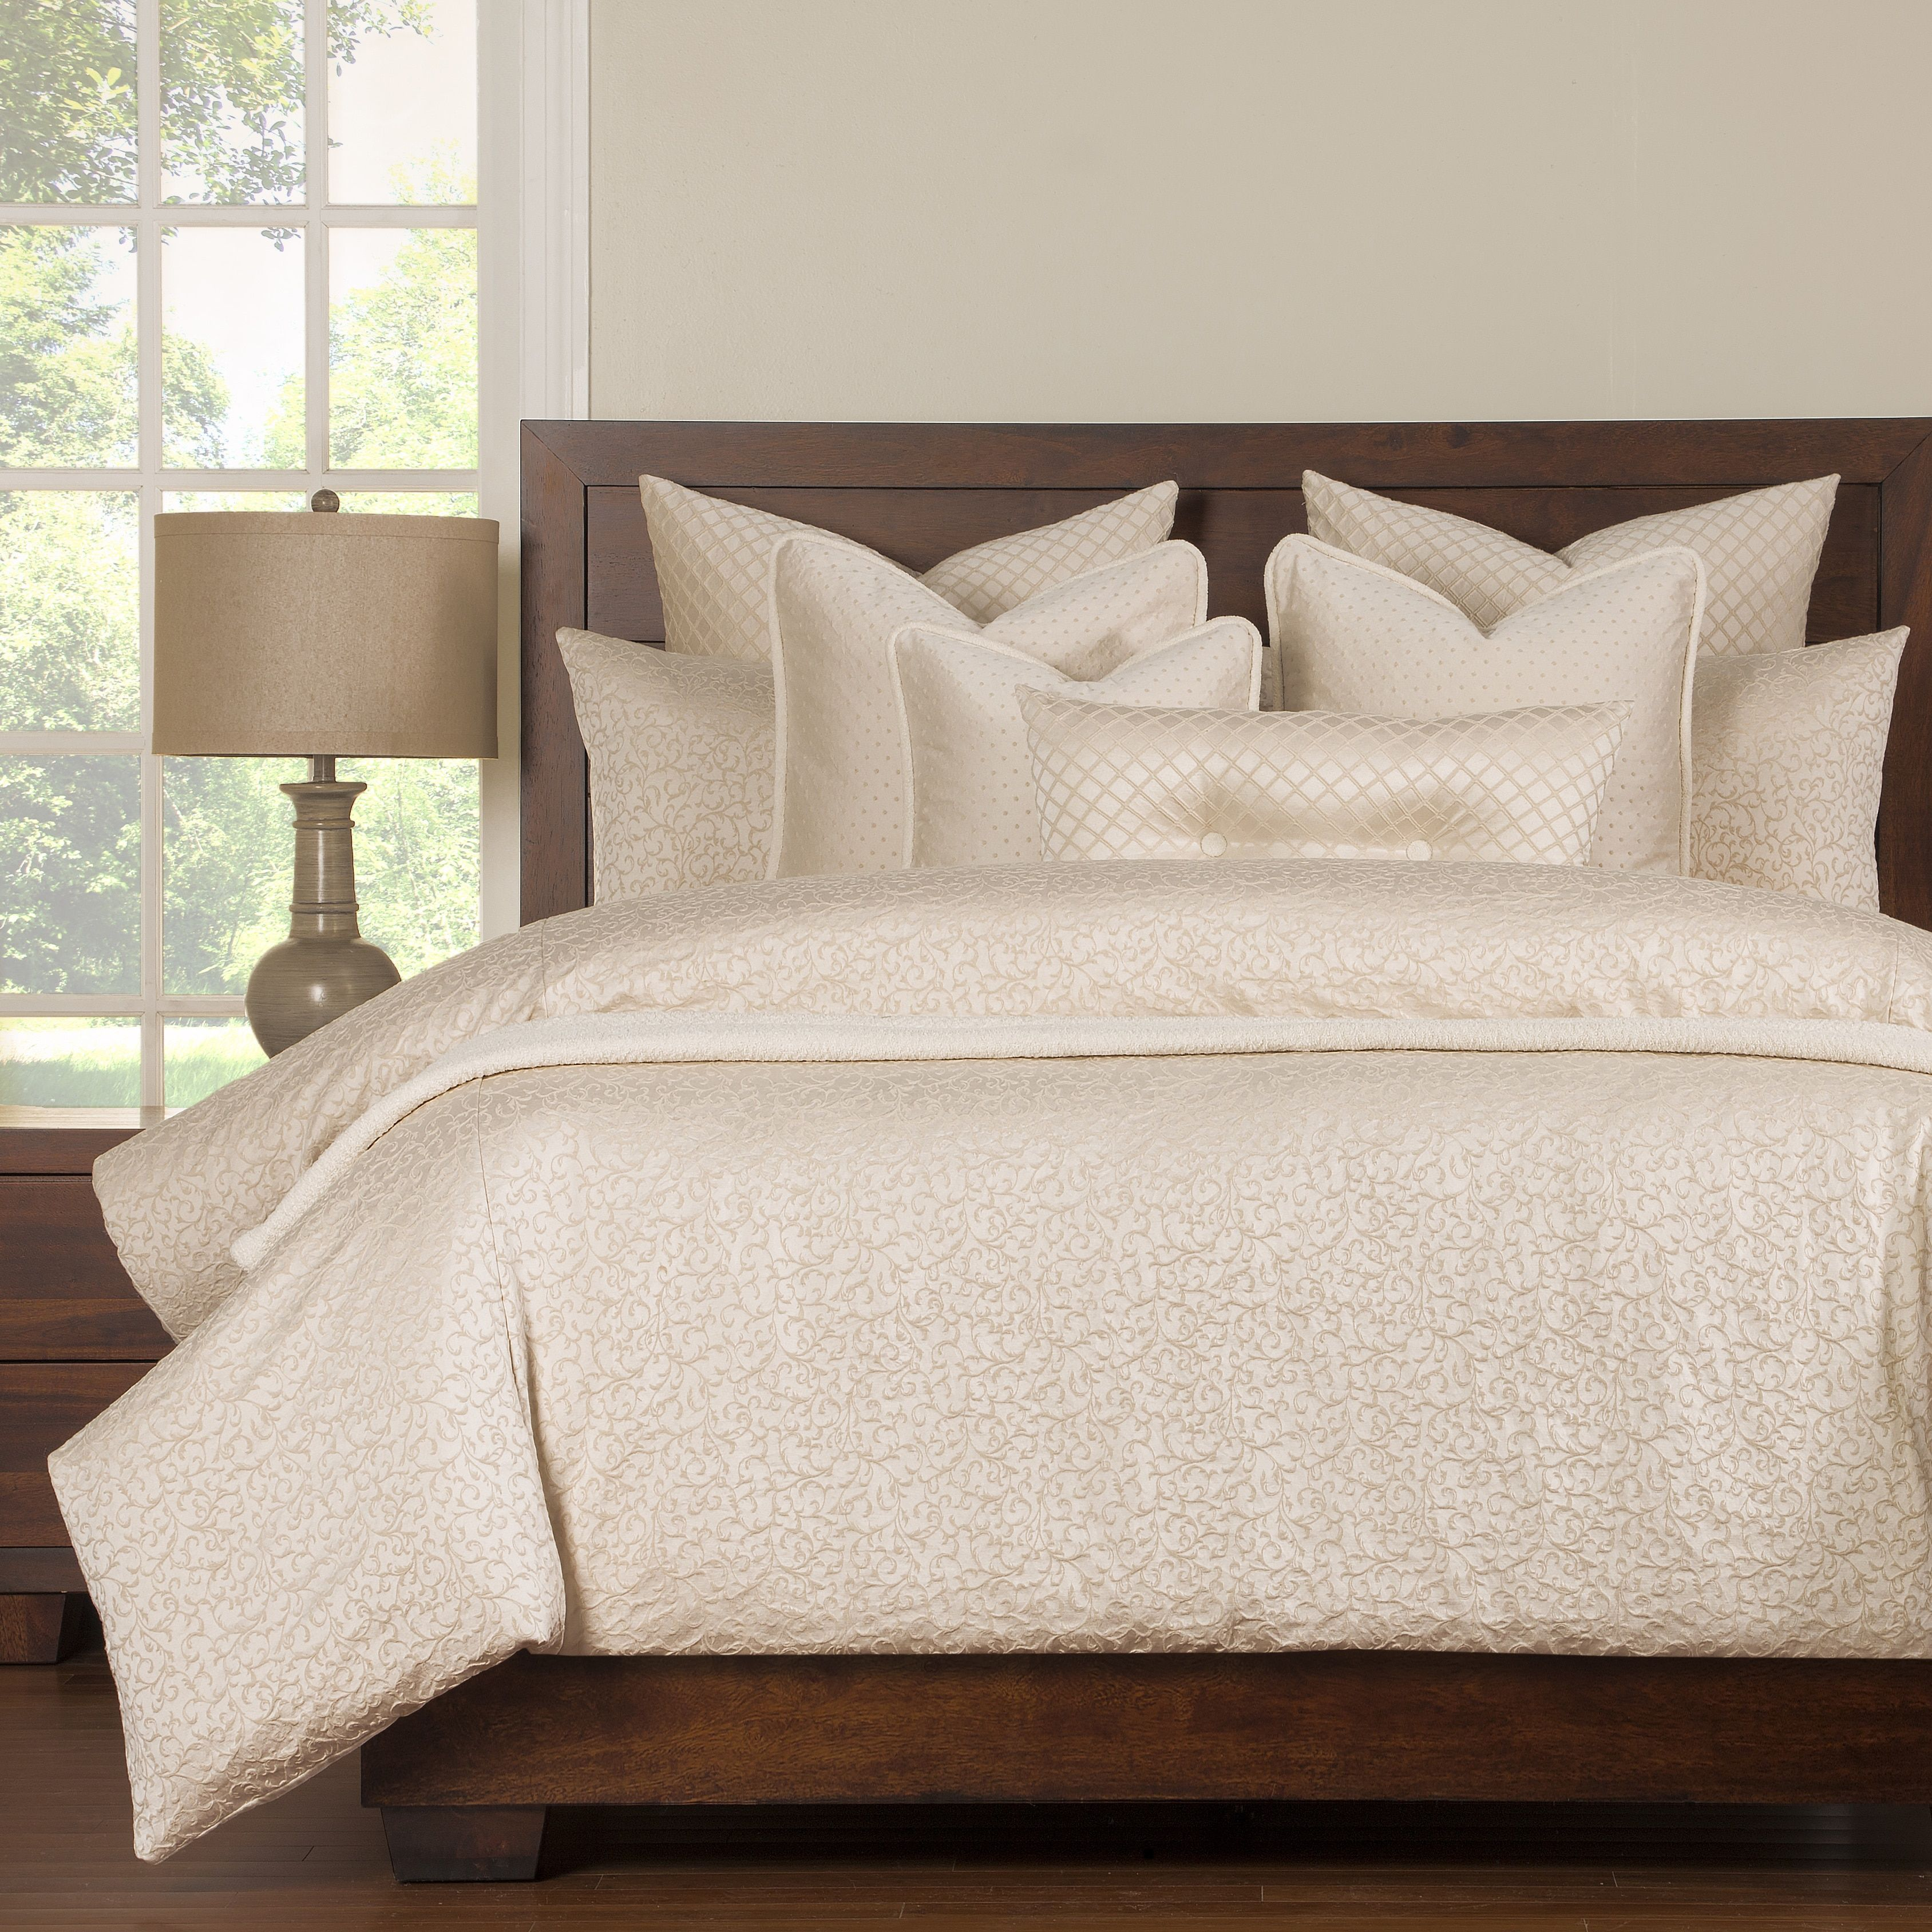 Pandora 6 piece Luxury Duvet Cover Set by SIScovers